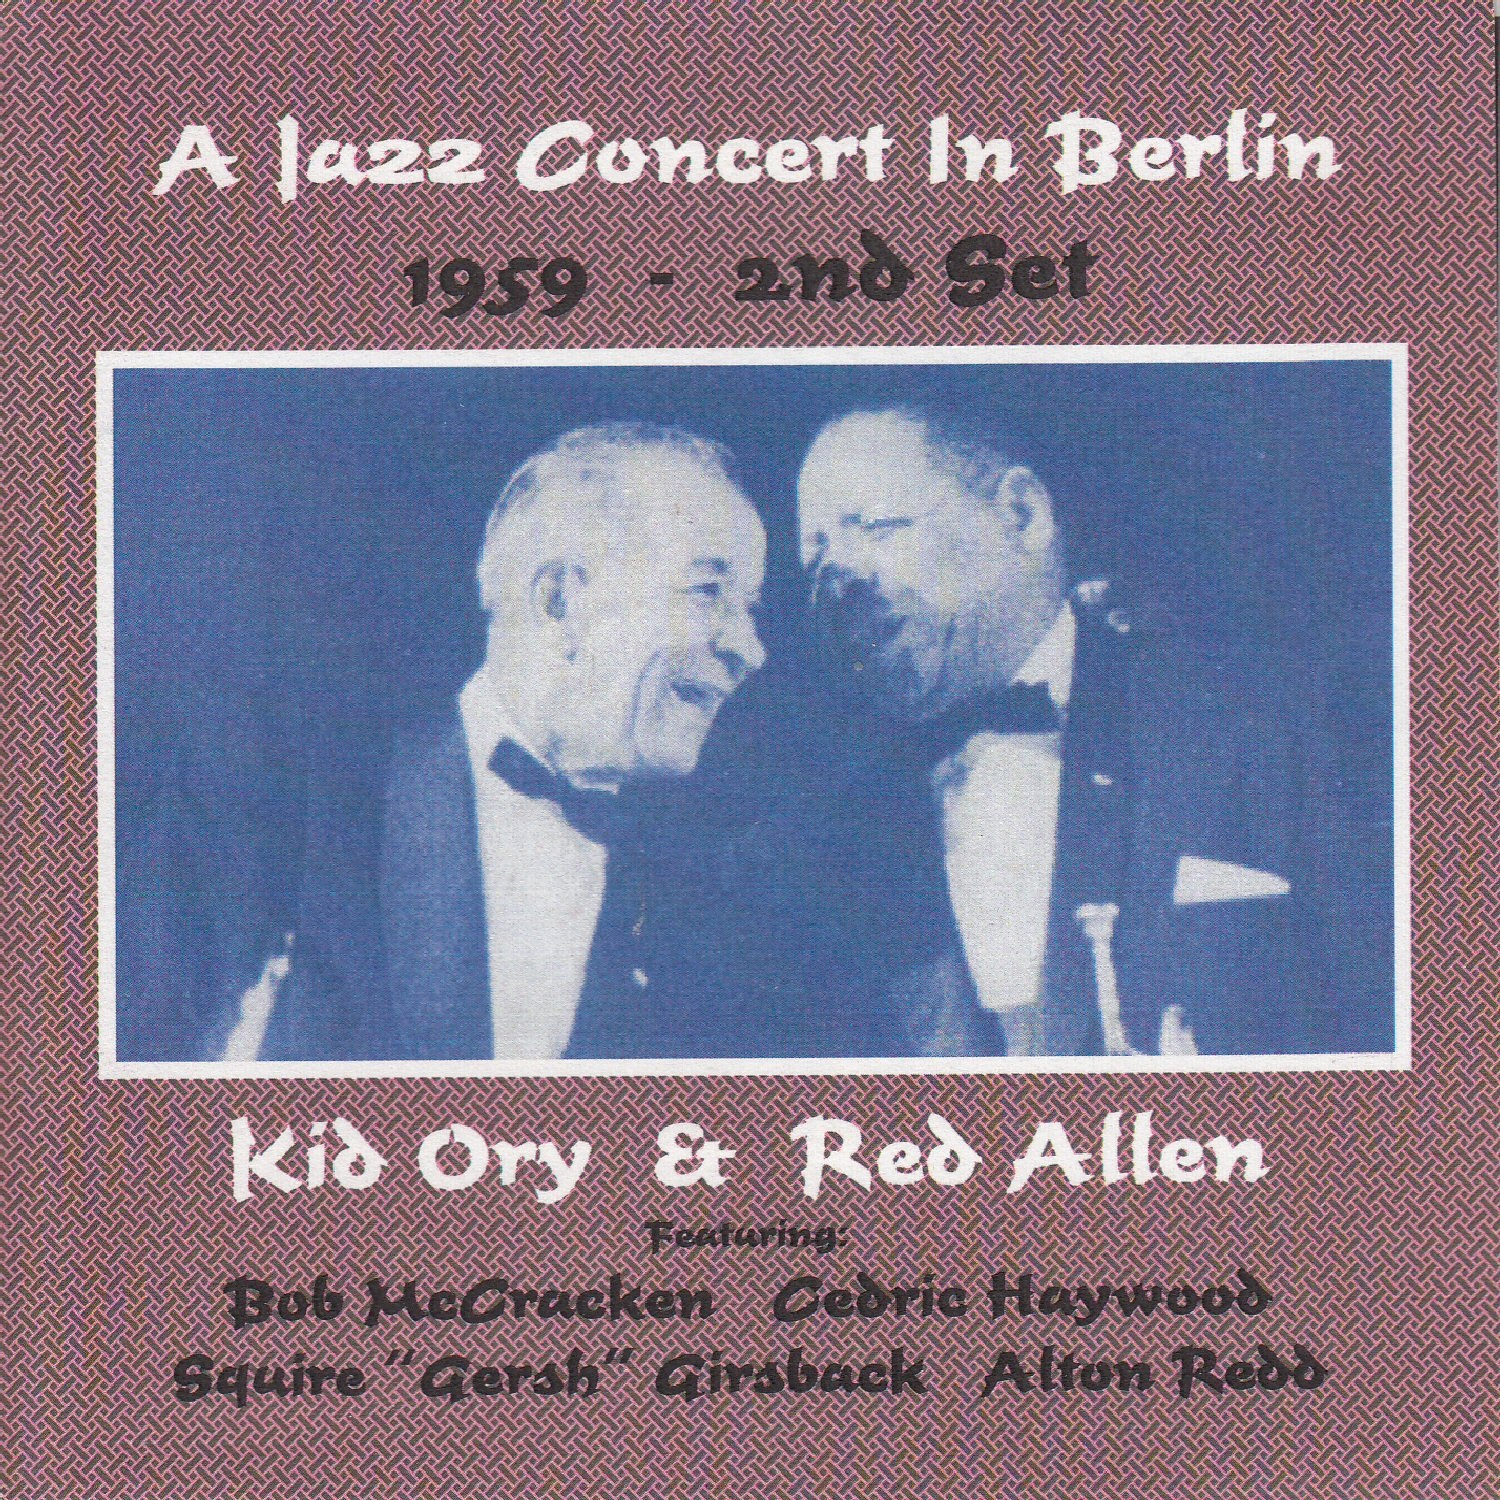 A Jazz Concert in Berlin 1959: 2nd Set (feat. Bob Mccracken, Cedric Haywood, Squire 'Gersh' Girsback & Alton Redd)